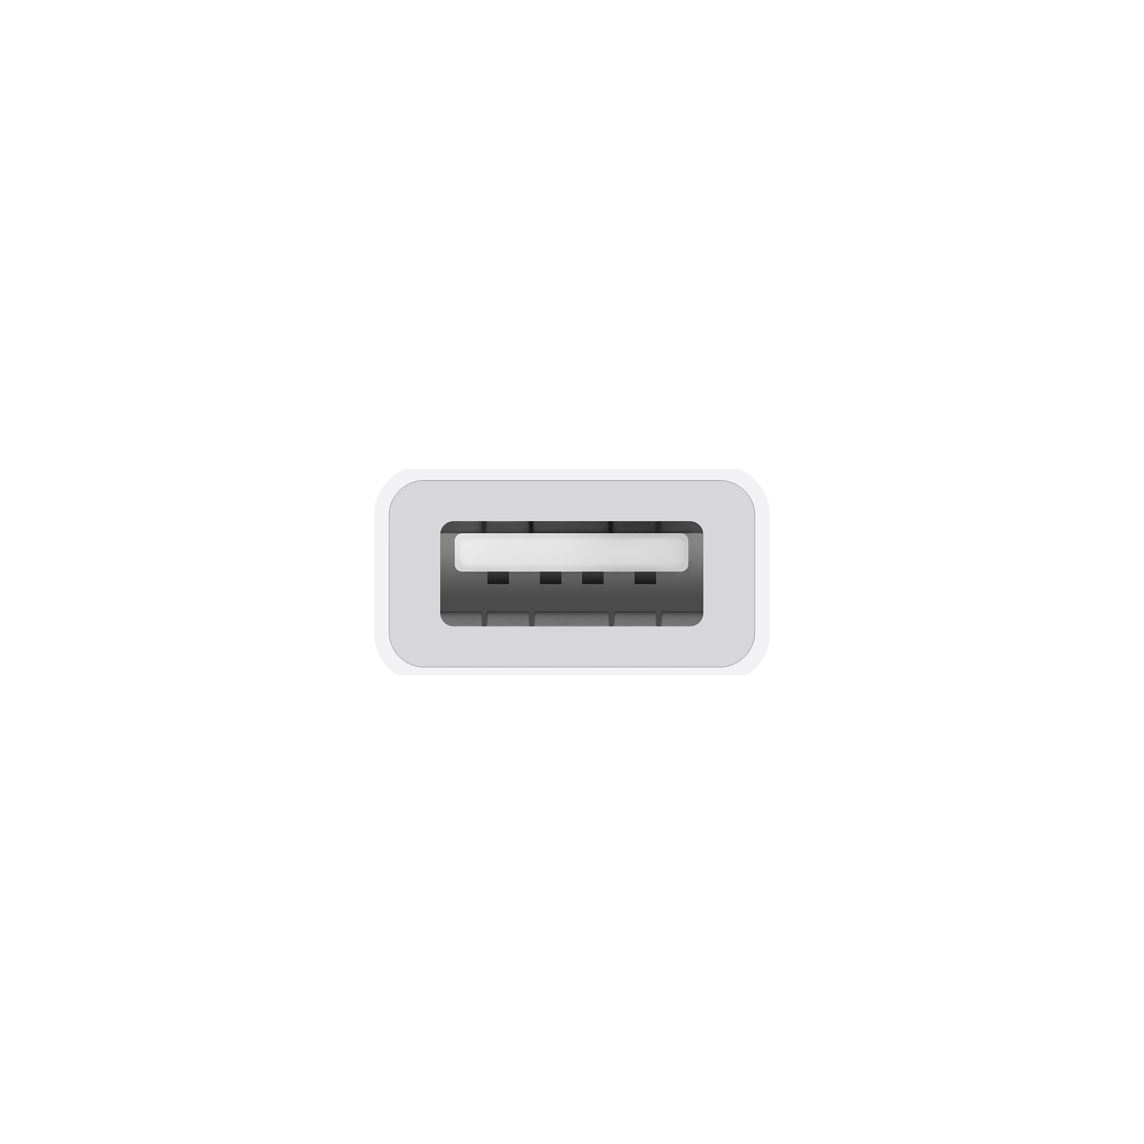 Picture of Apple USB-C to USB Adapter